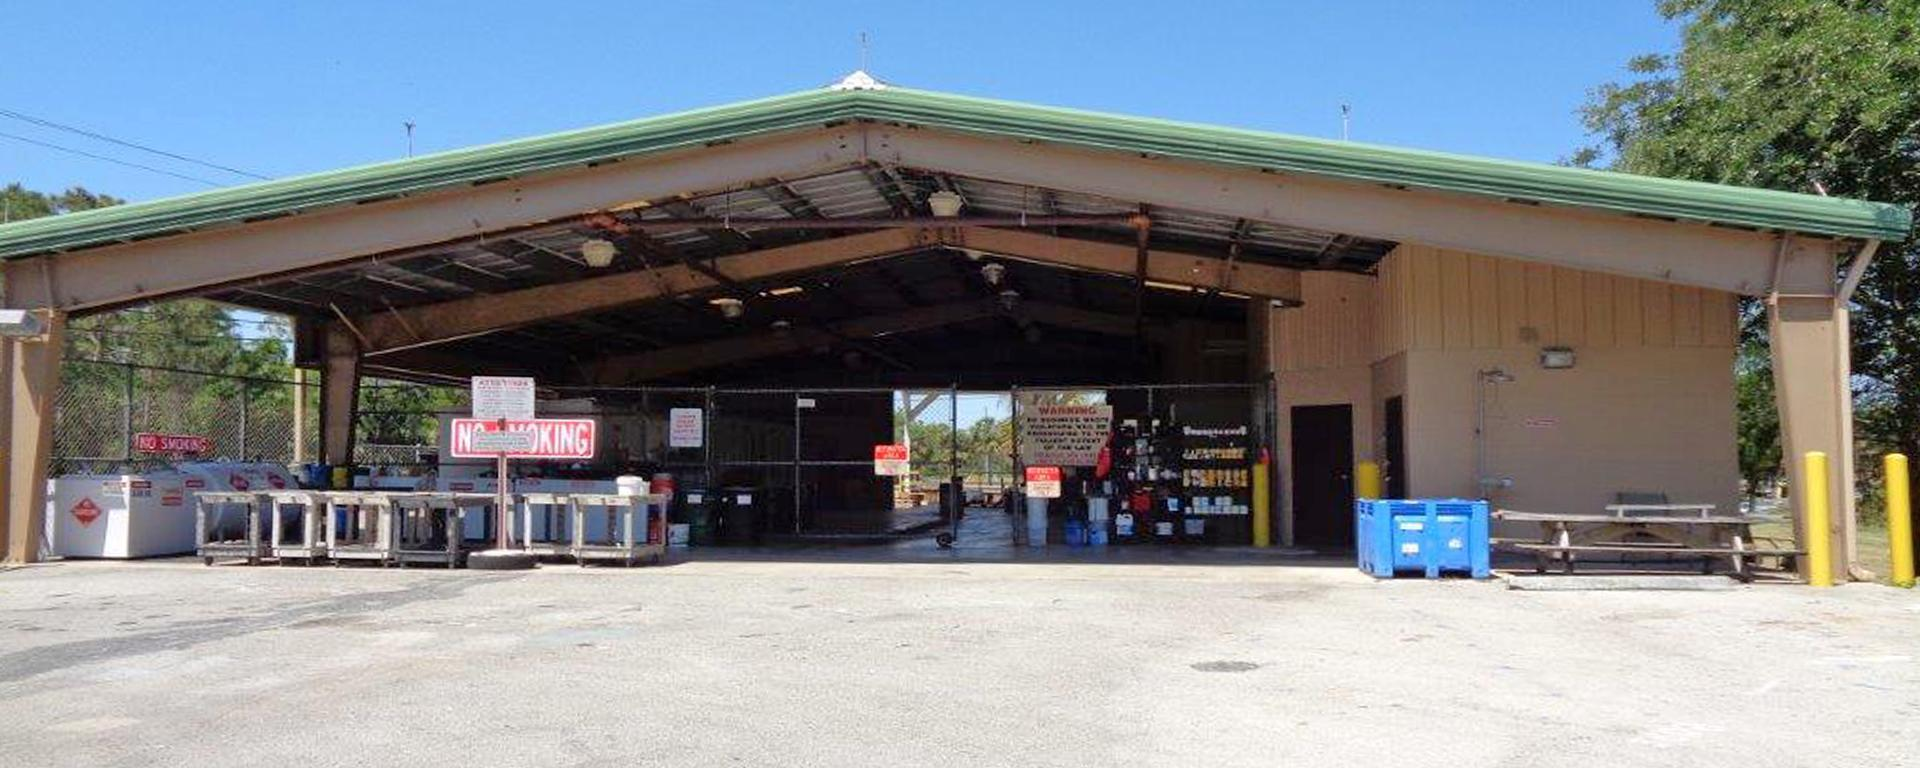 The Household Hazardous Waste Disposal Center in Palm City